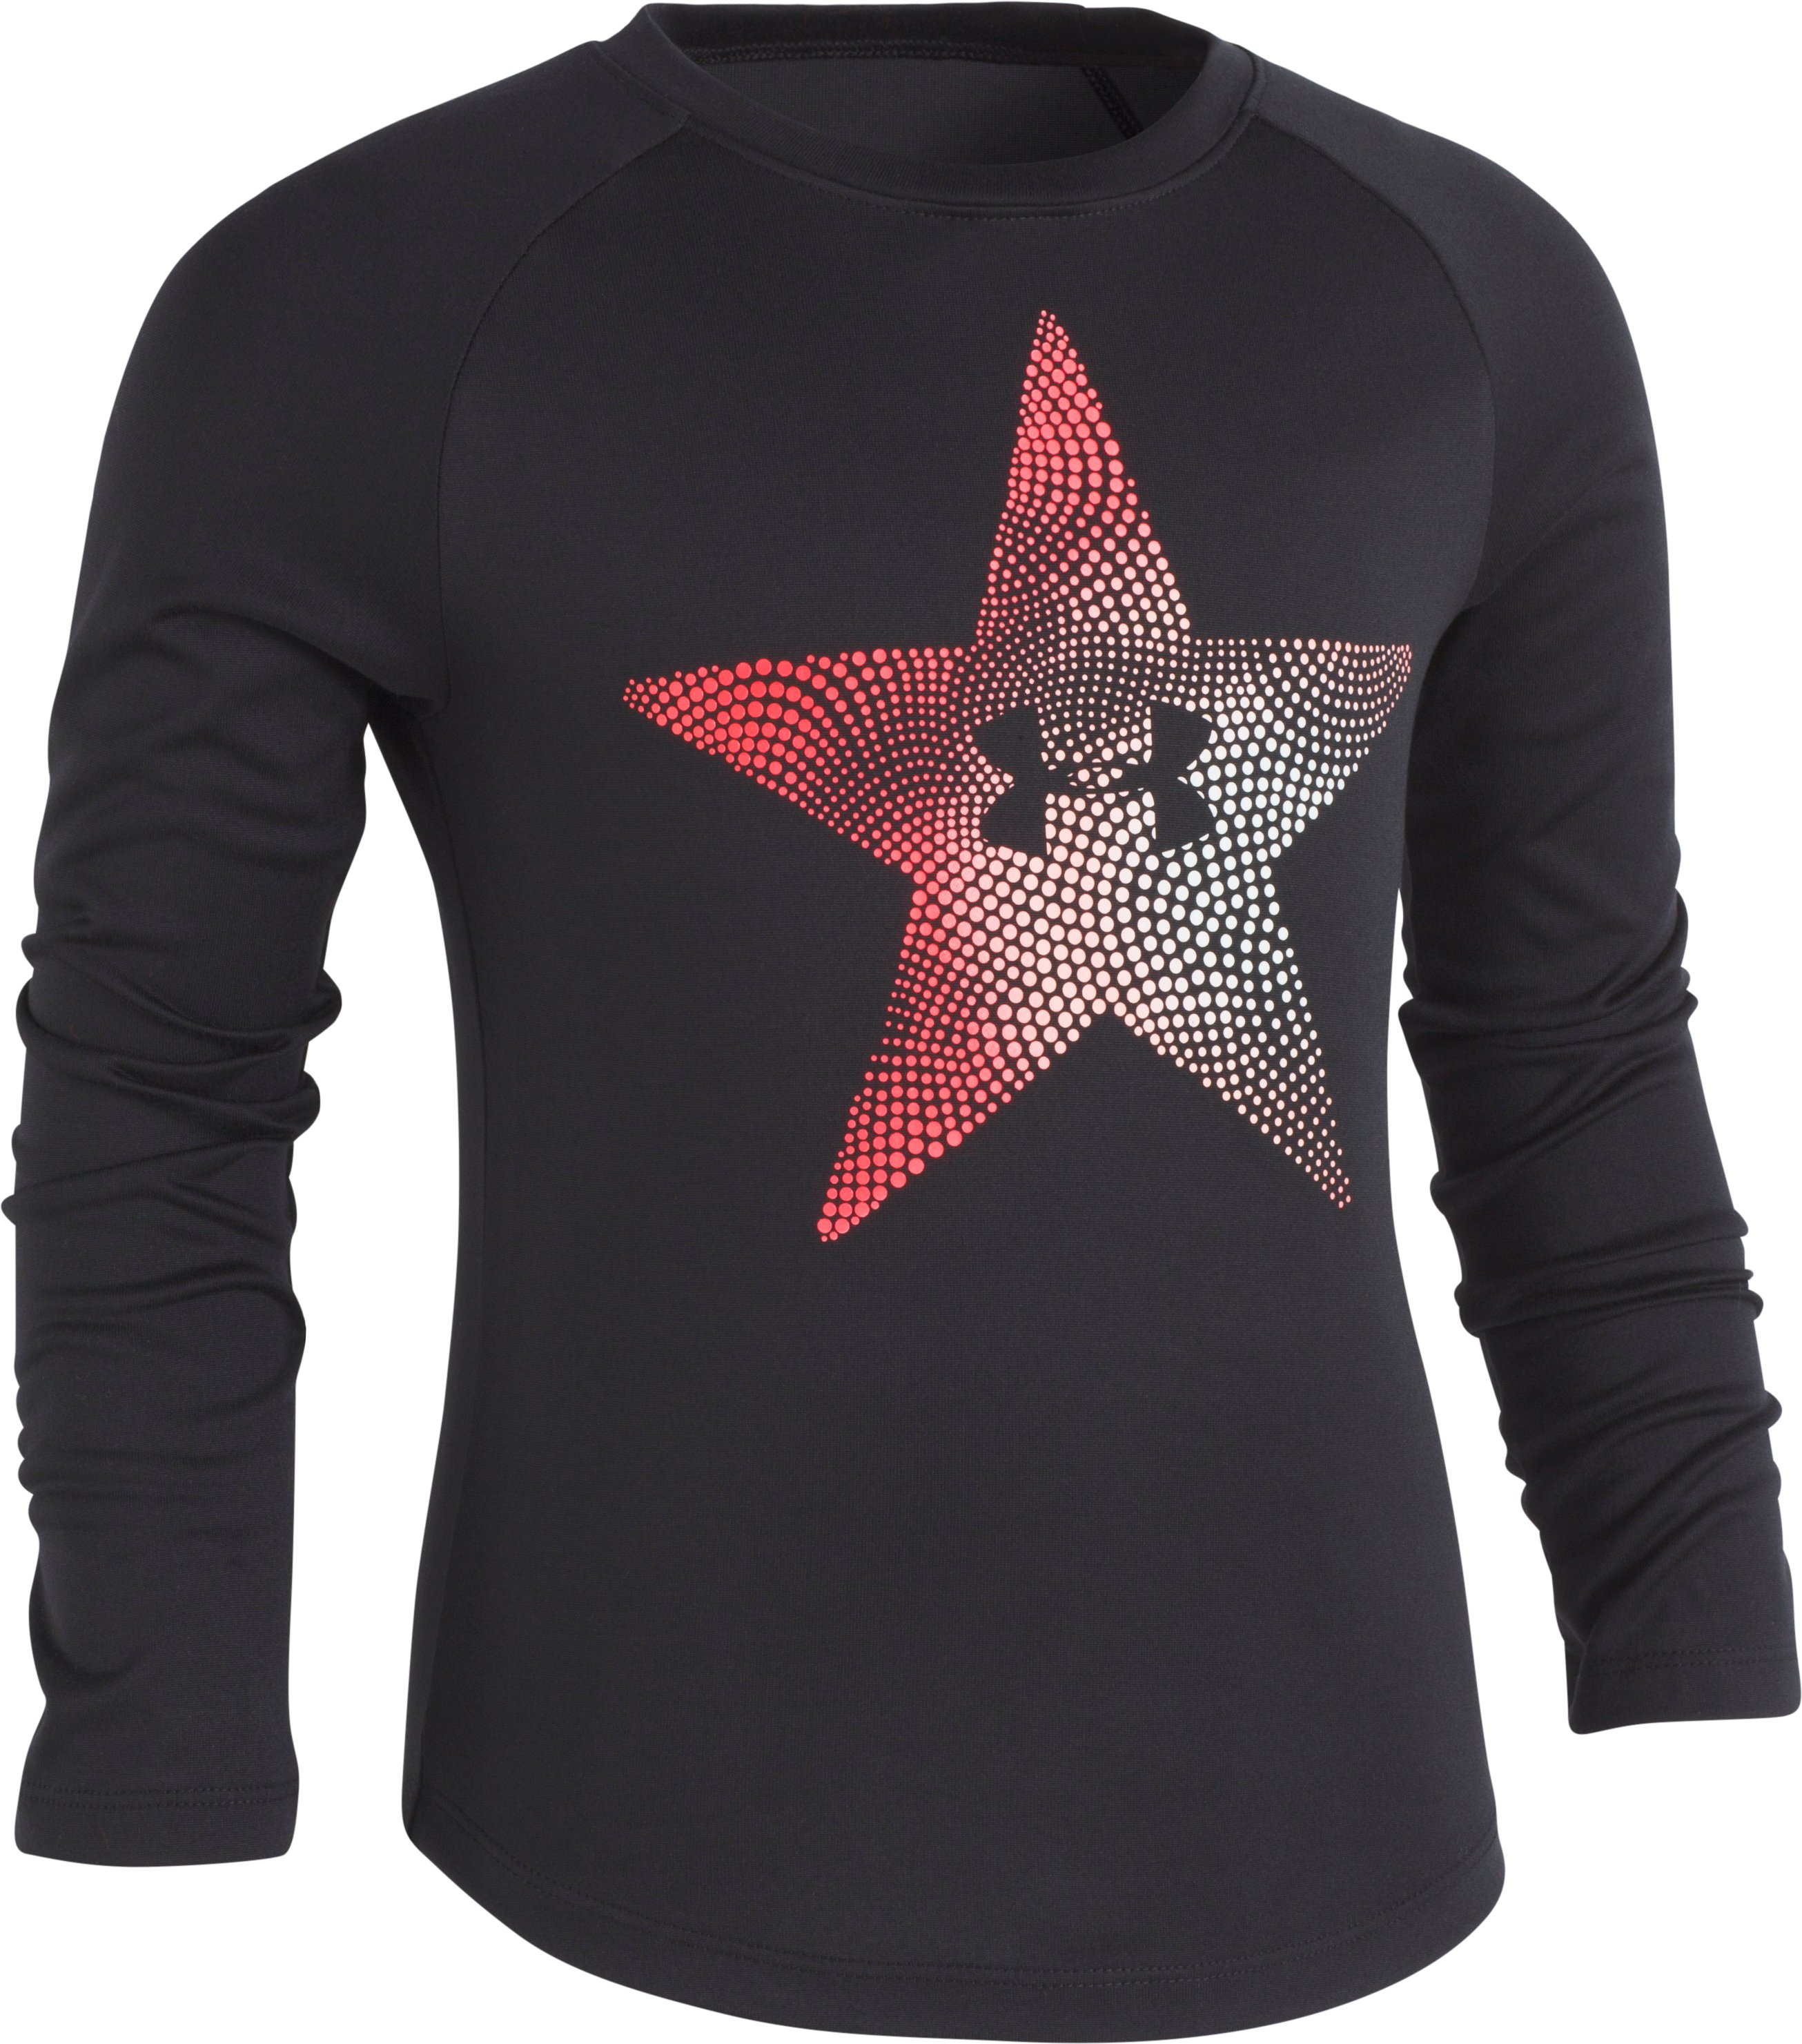 Girls' Pre-School UA Star Oracle Long Sleeve T-Shirt, Black , Laydown